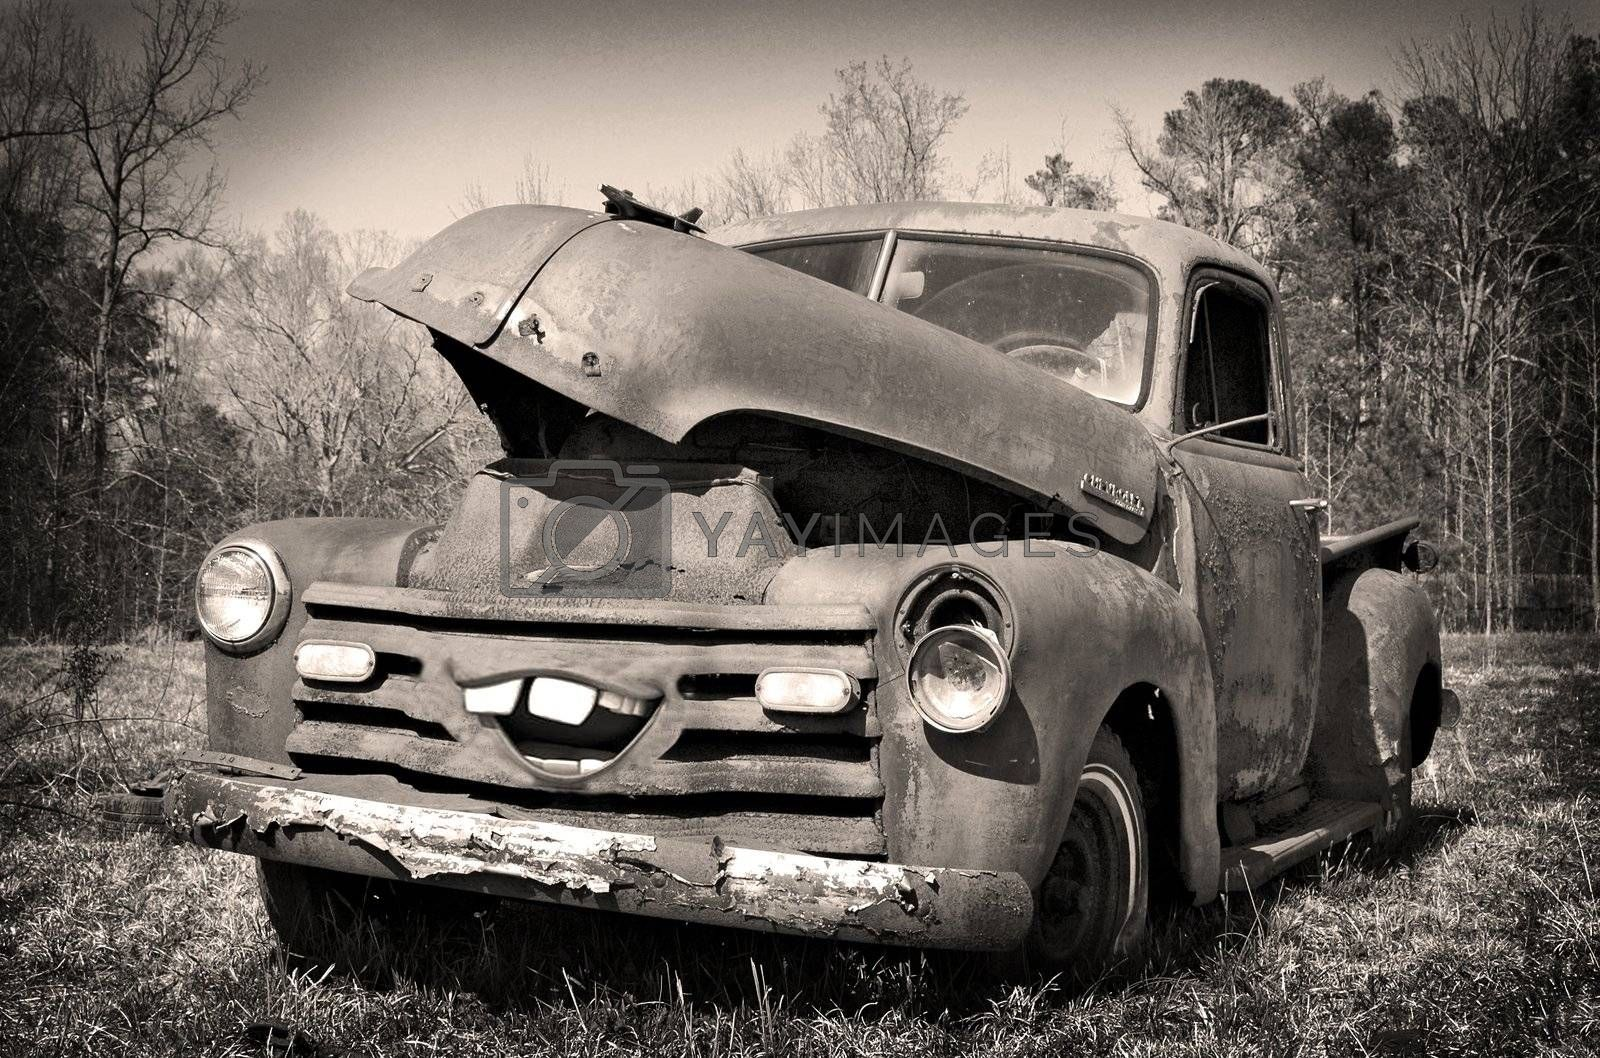 View of an old abandoned rusted out Thriftmaster Pick Up truck in Black and White with manipulation to the front grill in order to add a mouth.